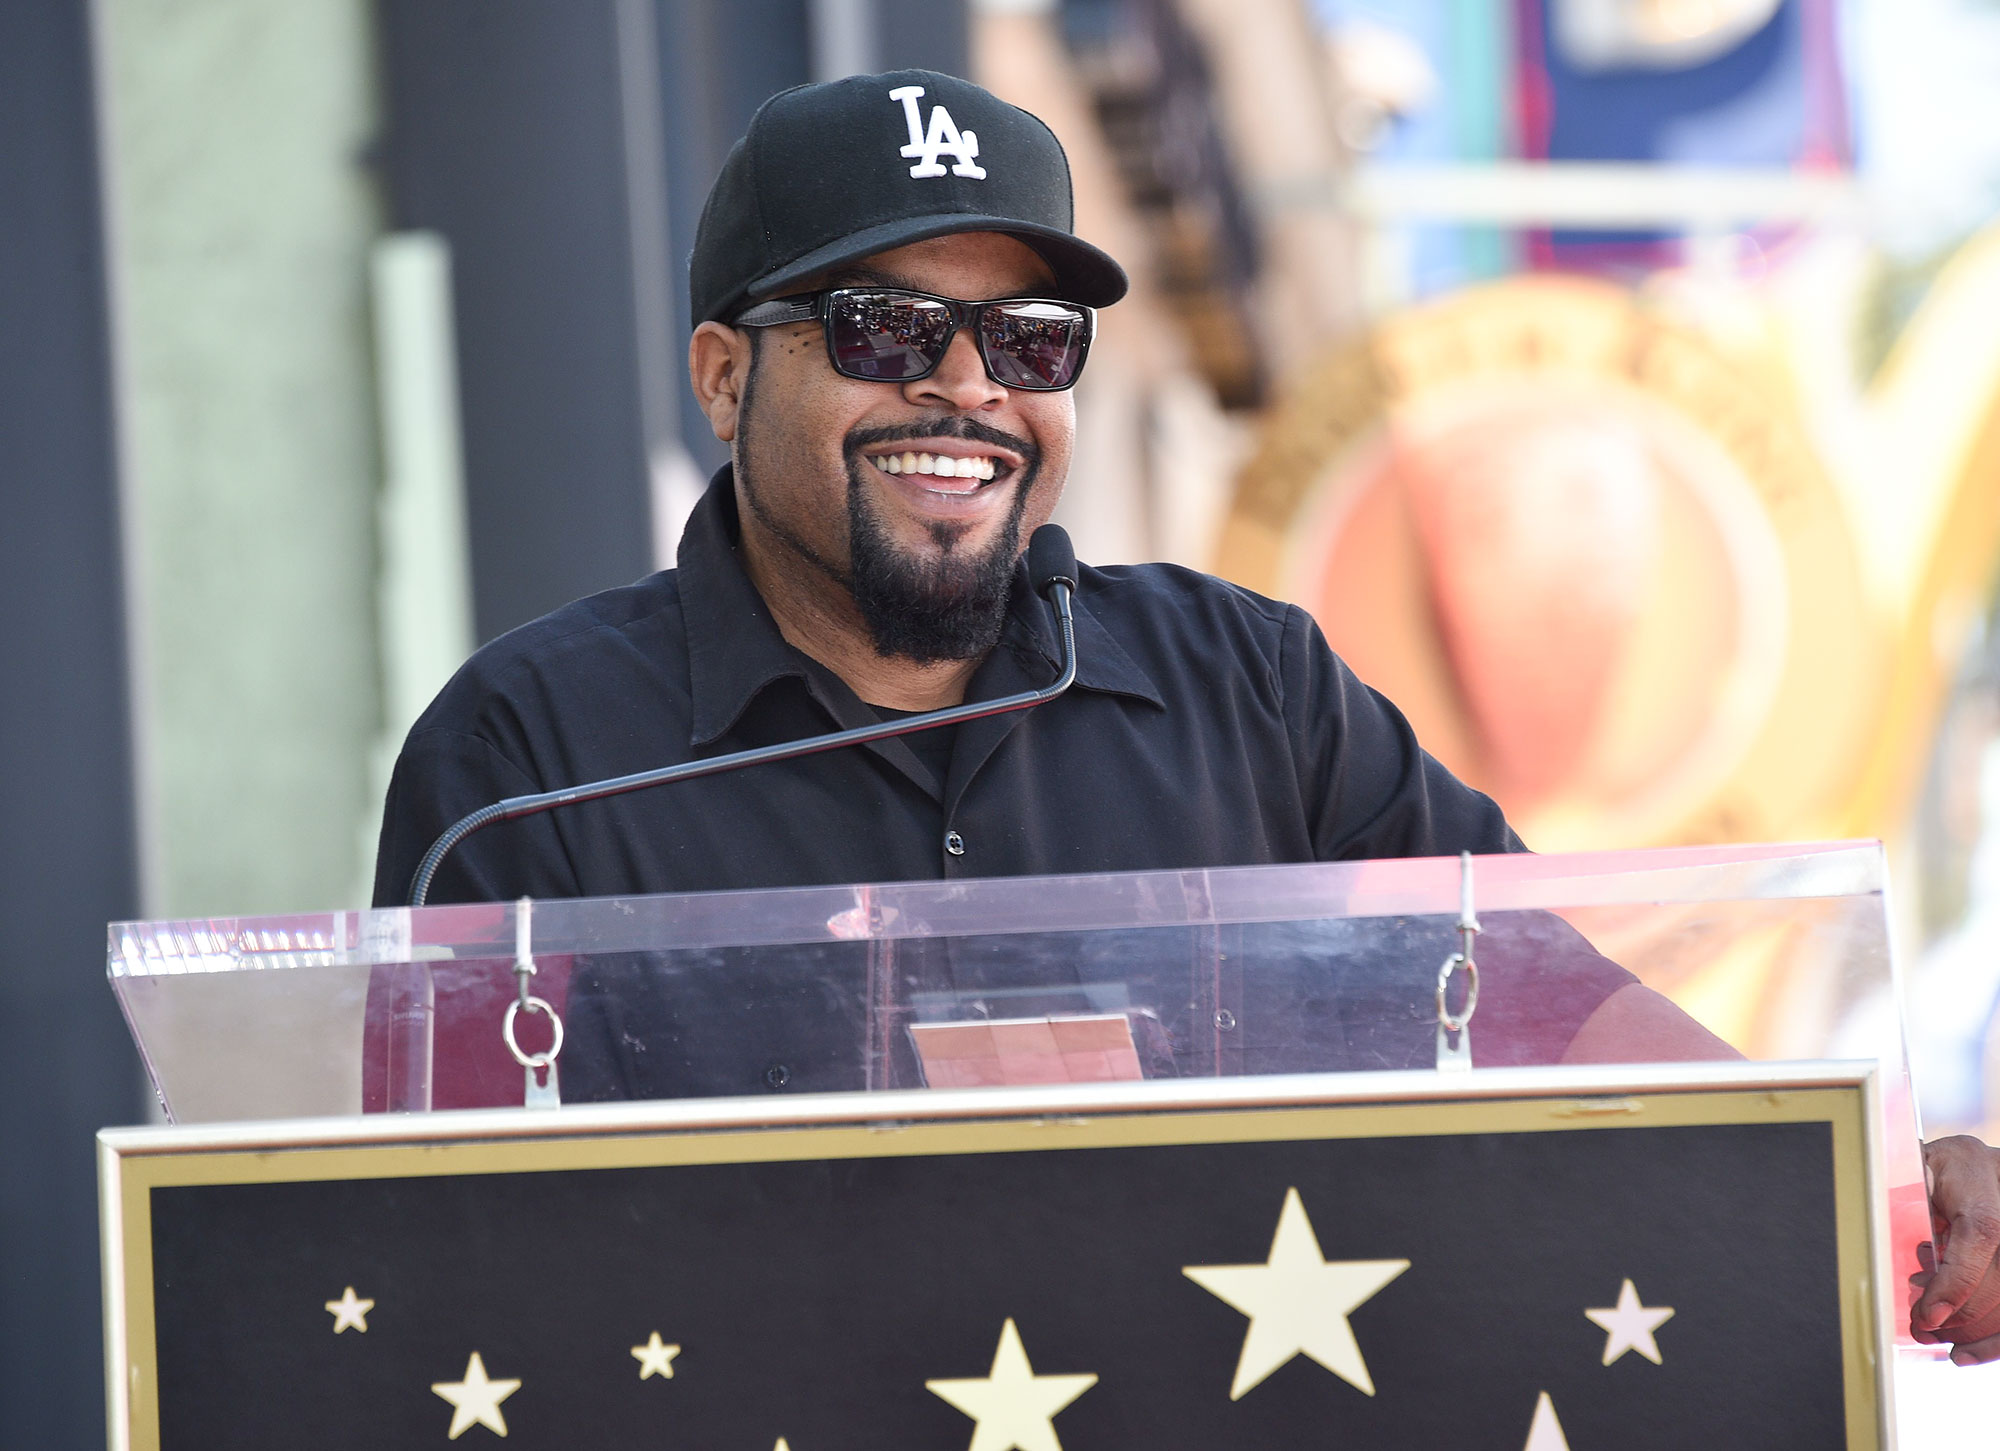 Ice Cube Honored with a Star on the Hollywood Walk of Fame, Los Angeles, USA - 12 Jun 2017